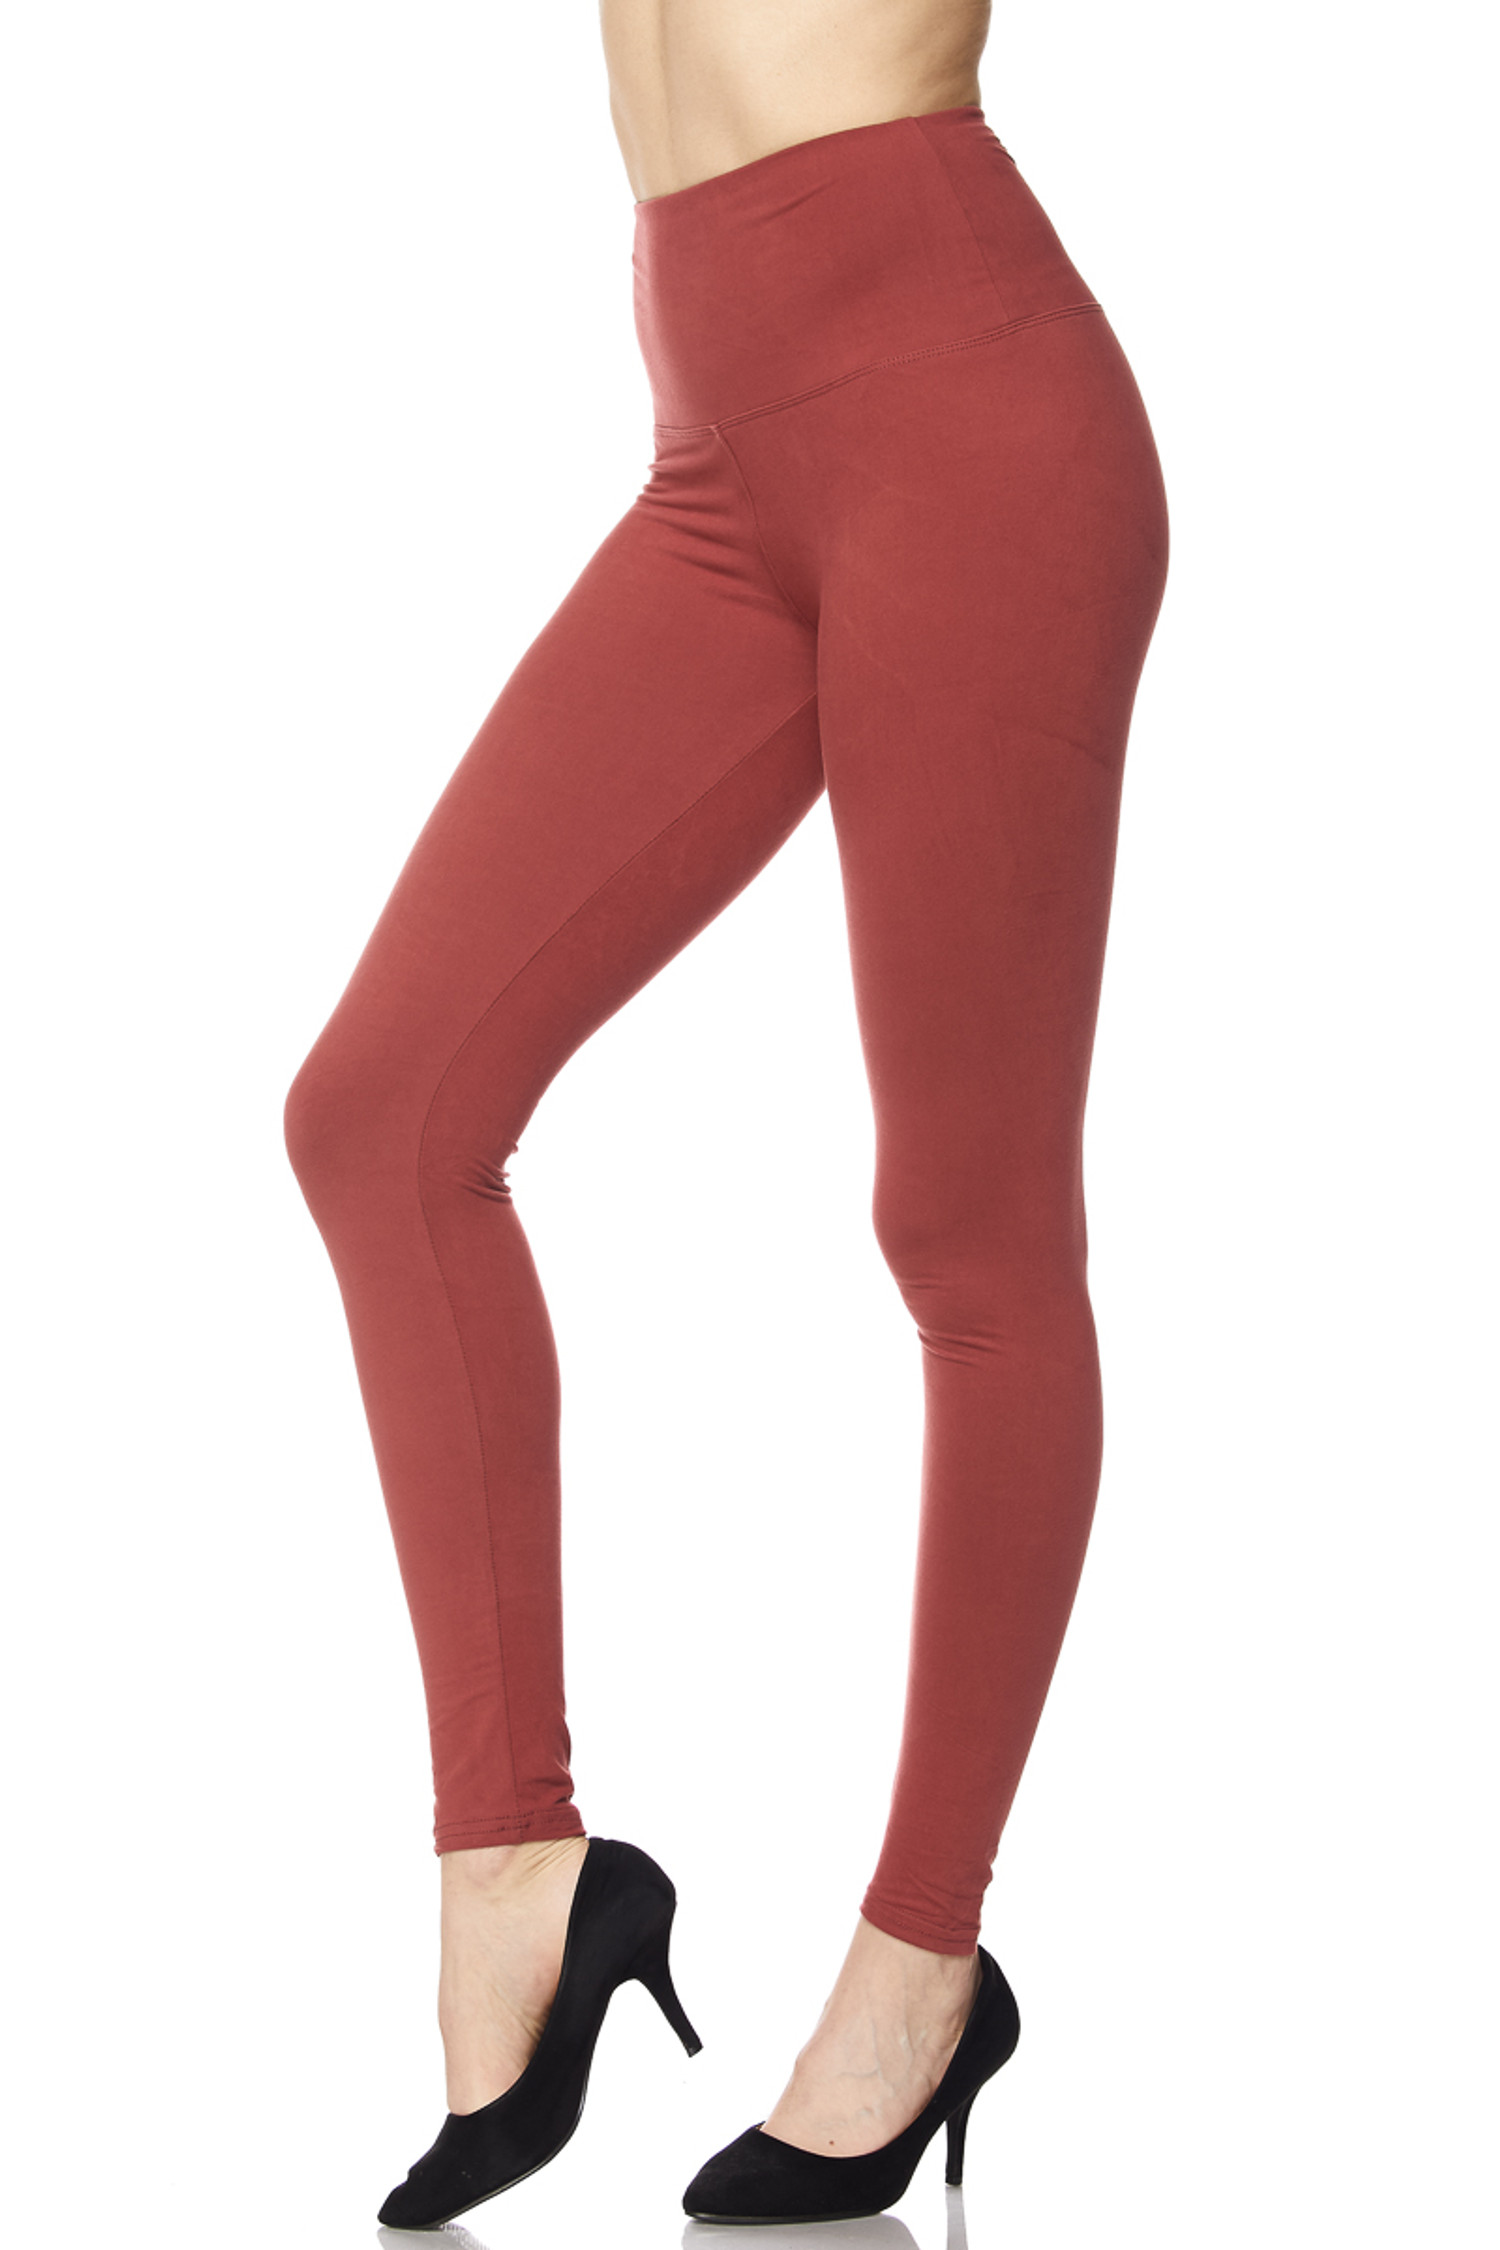 Brushed High Waisted Plus Size Basic Solid Leggings - 5 Inch Band